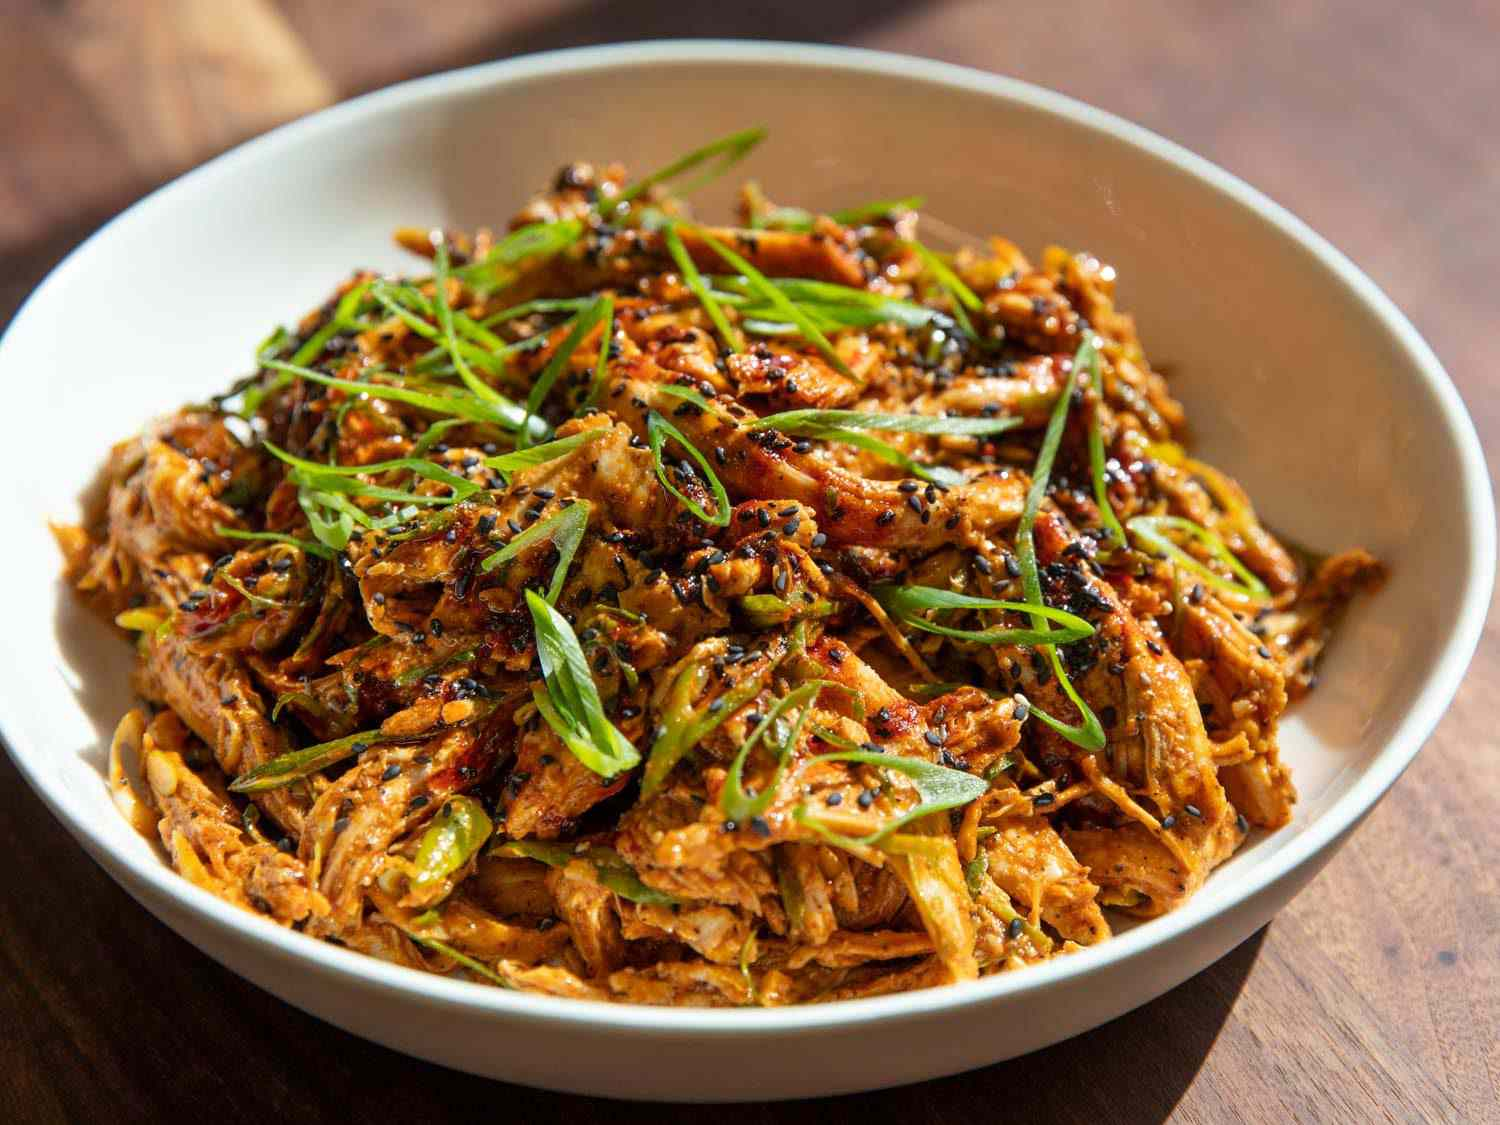 Closeup side view of a bowl of Sichuan-style turkey salad.